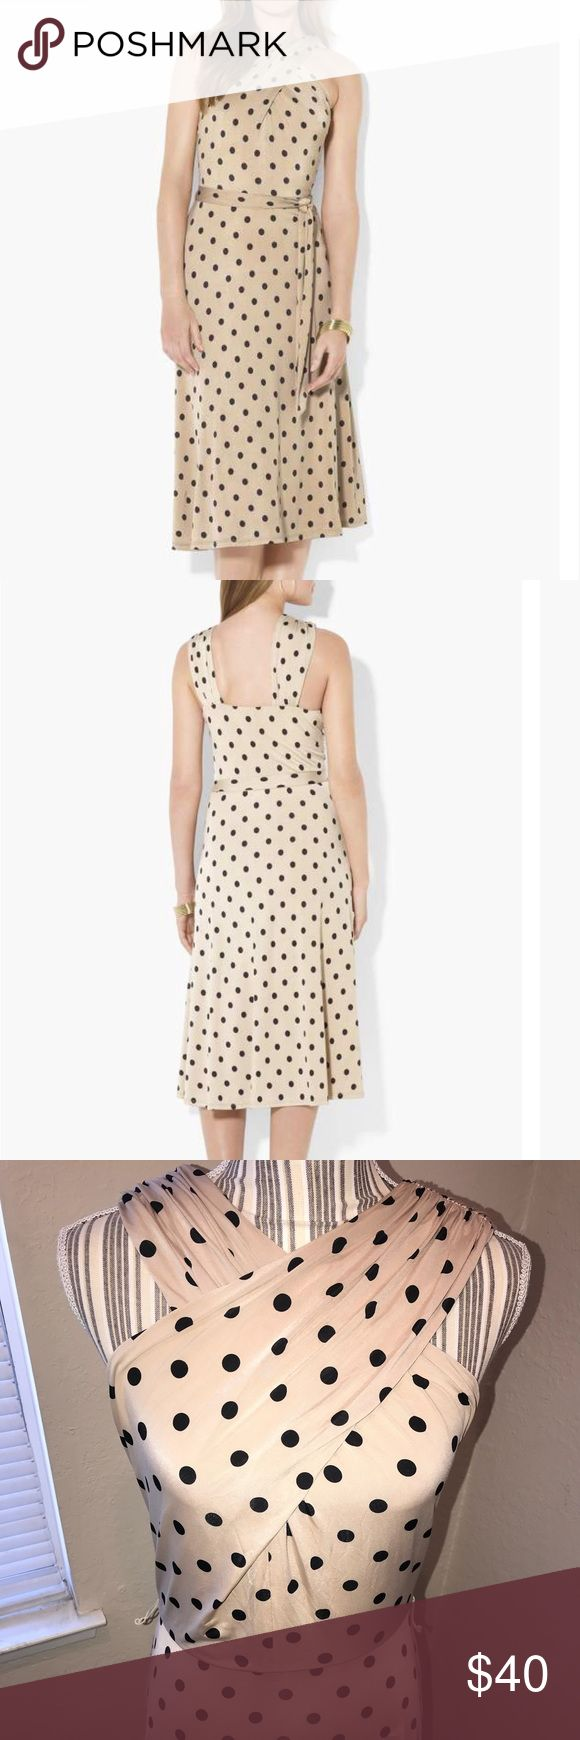 "Lauren by Ralph Lauren Polka Dot Cross Over Dress A flirty polka dot pattern punctuates the modern crisscross neckline and flared skirt of a smooth jersey halter dress. Slips on over head. Approx. length from top center front to hem: 42"". Fully lined. Polyester/elastane; machine wash. By Lauren Ralph Lauren; imported. Dresses. Item #530346  ❌Missing Belt❌ Size: 10 Lauren Ralph Lauren Dresses Midi"